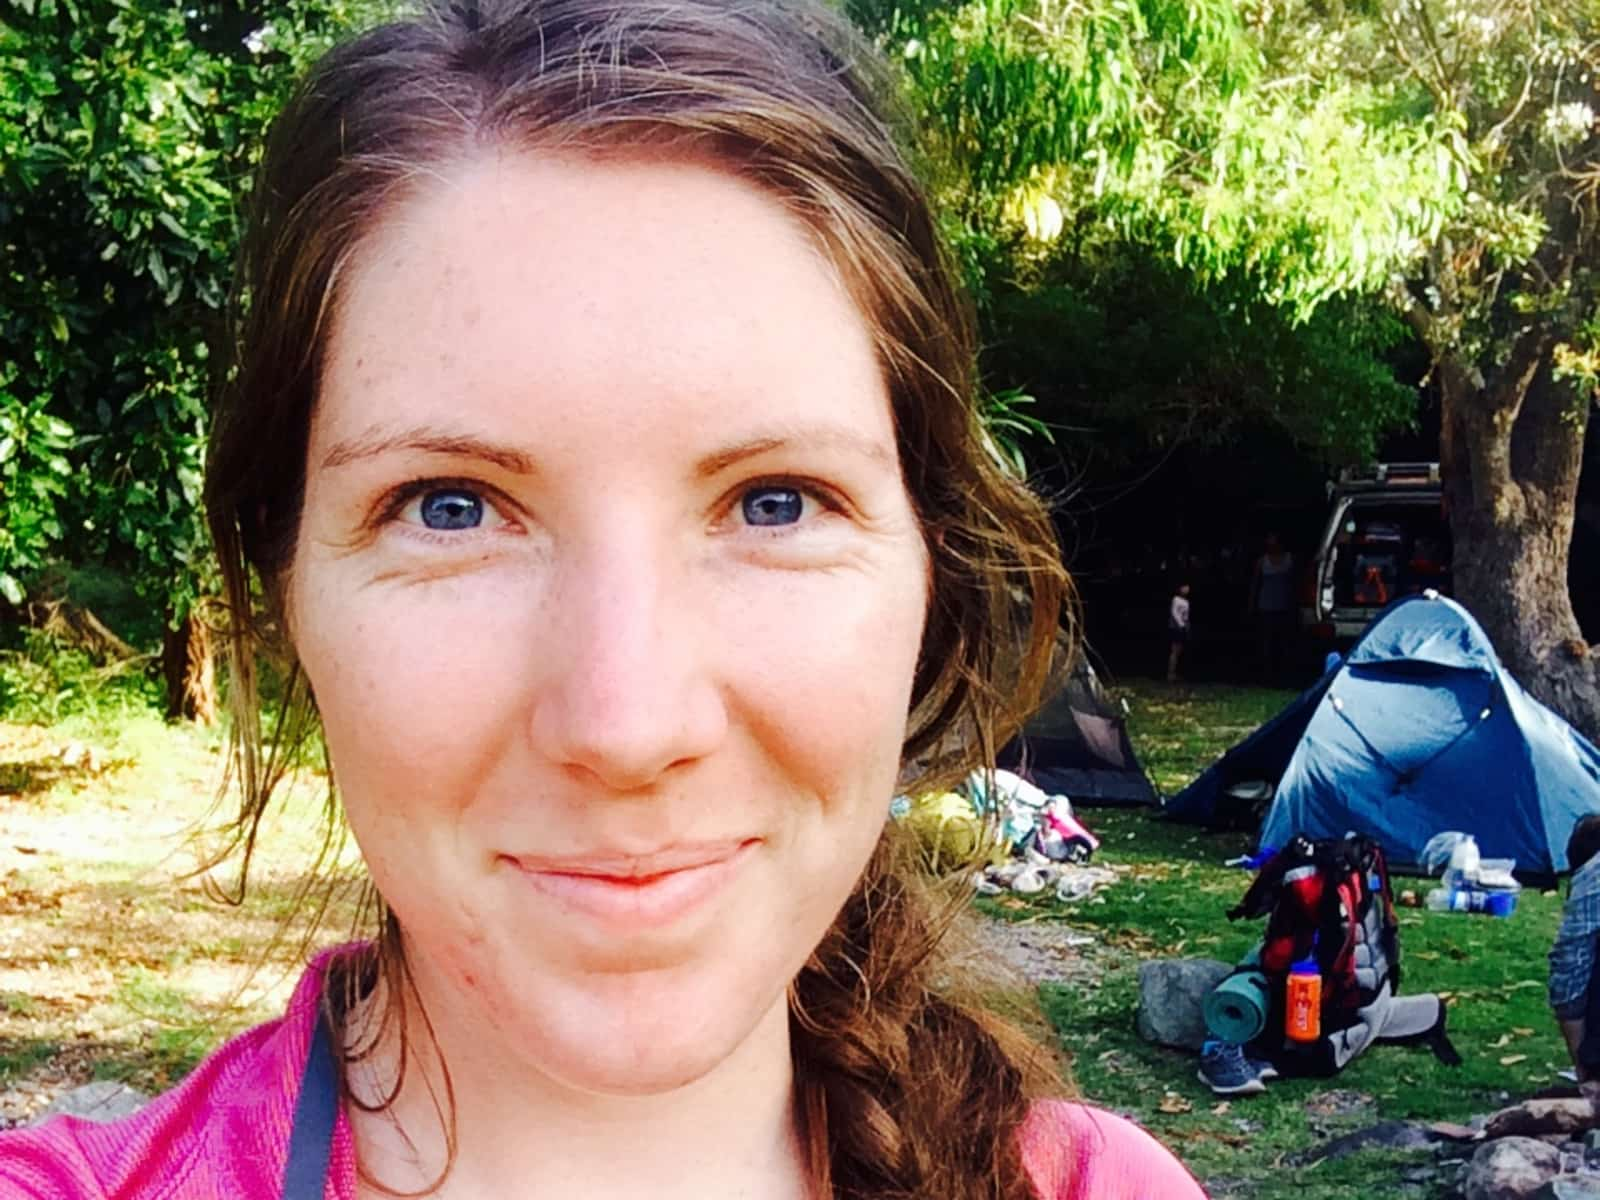 Bryony from Newcastle, New South Wales, Australia